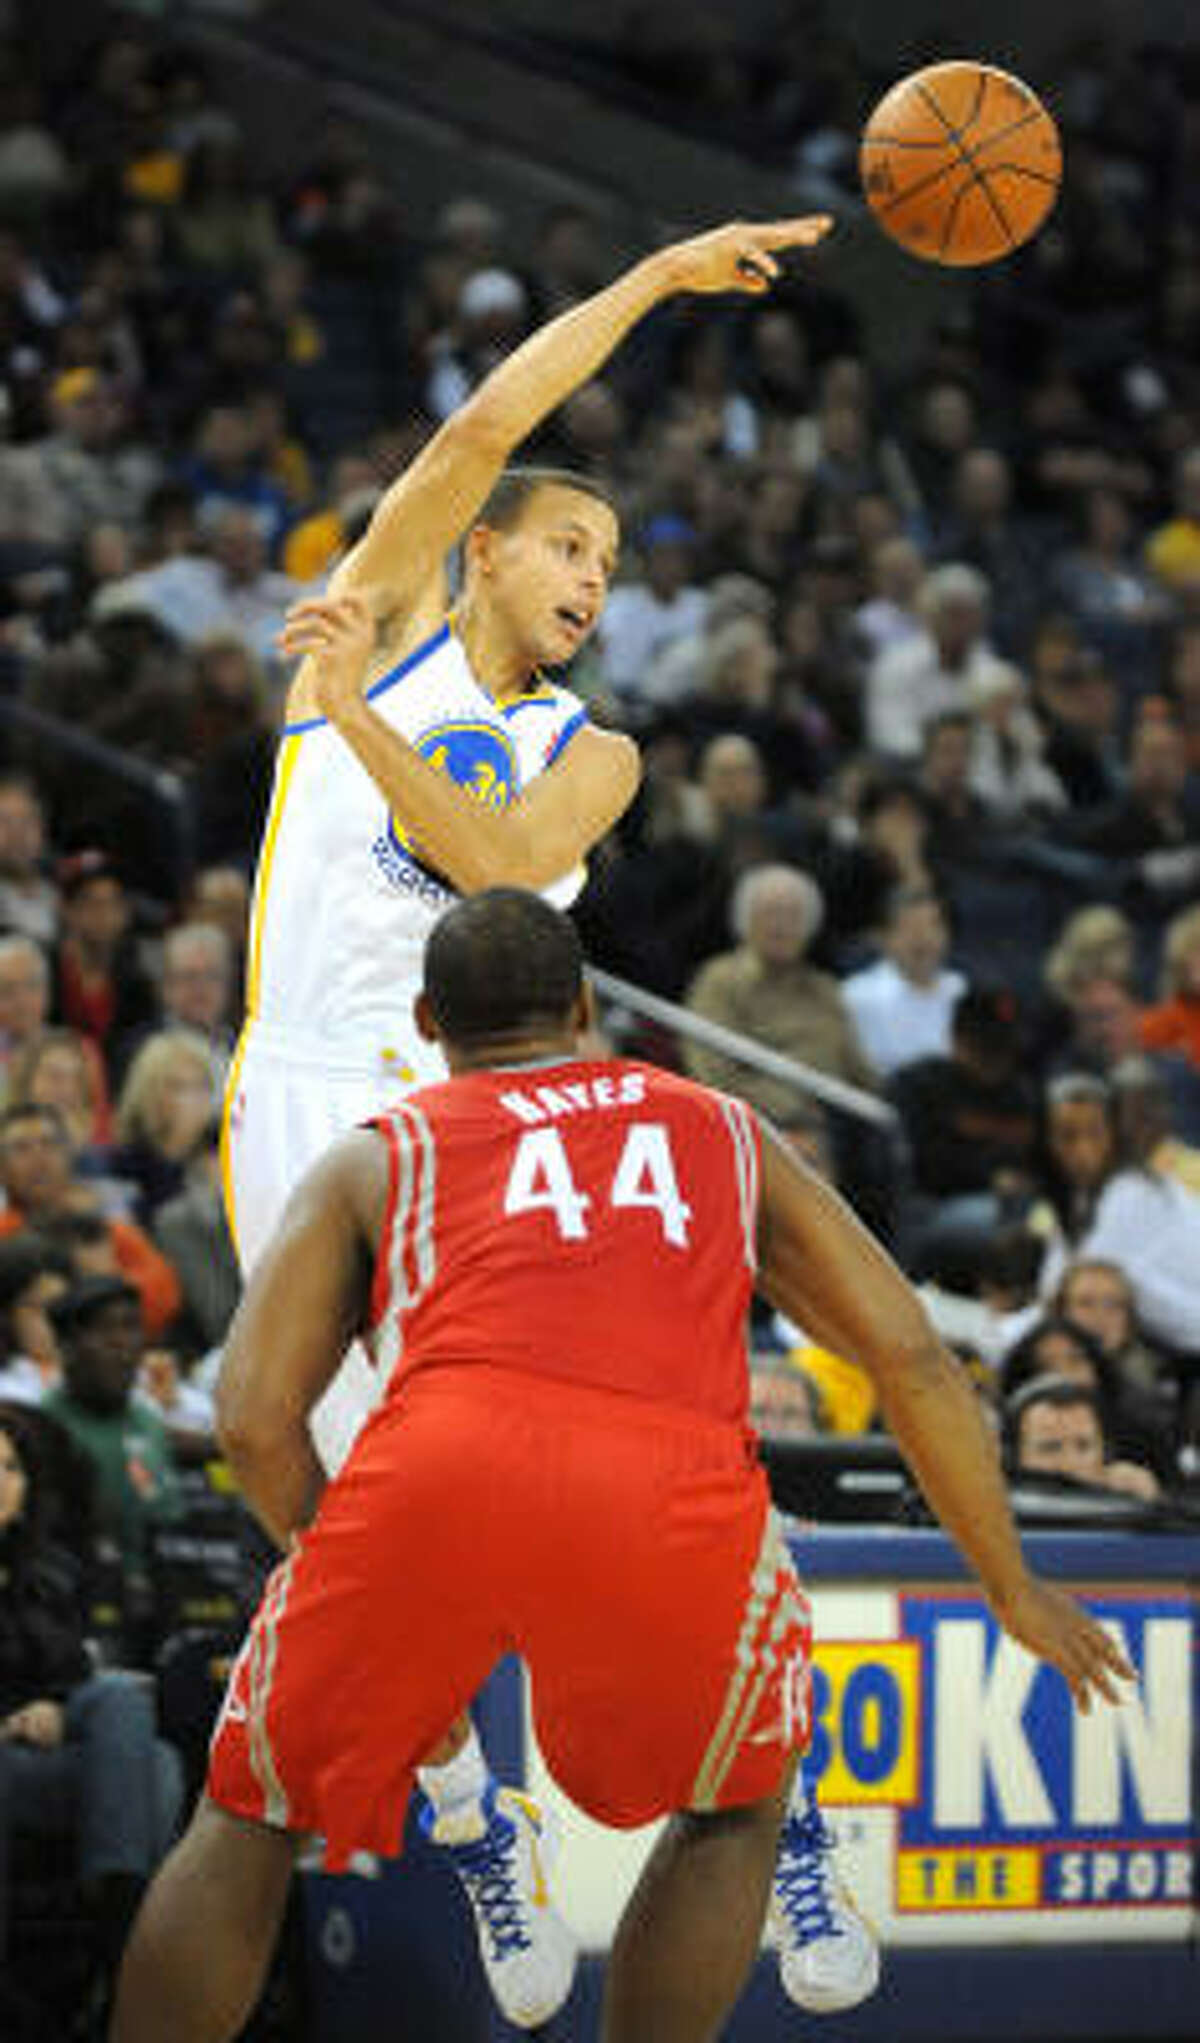 Rockets forward Chuck Hayes (44) watches as Golden State's Stephen Curry makes a pass in the second quarter.